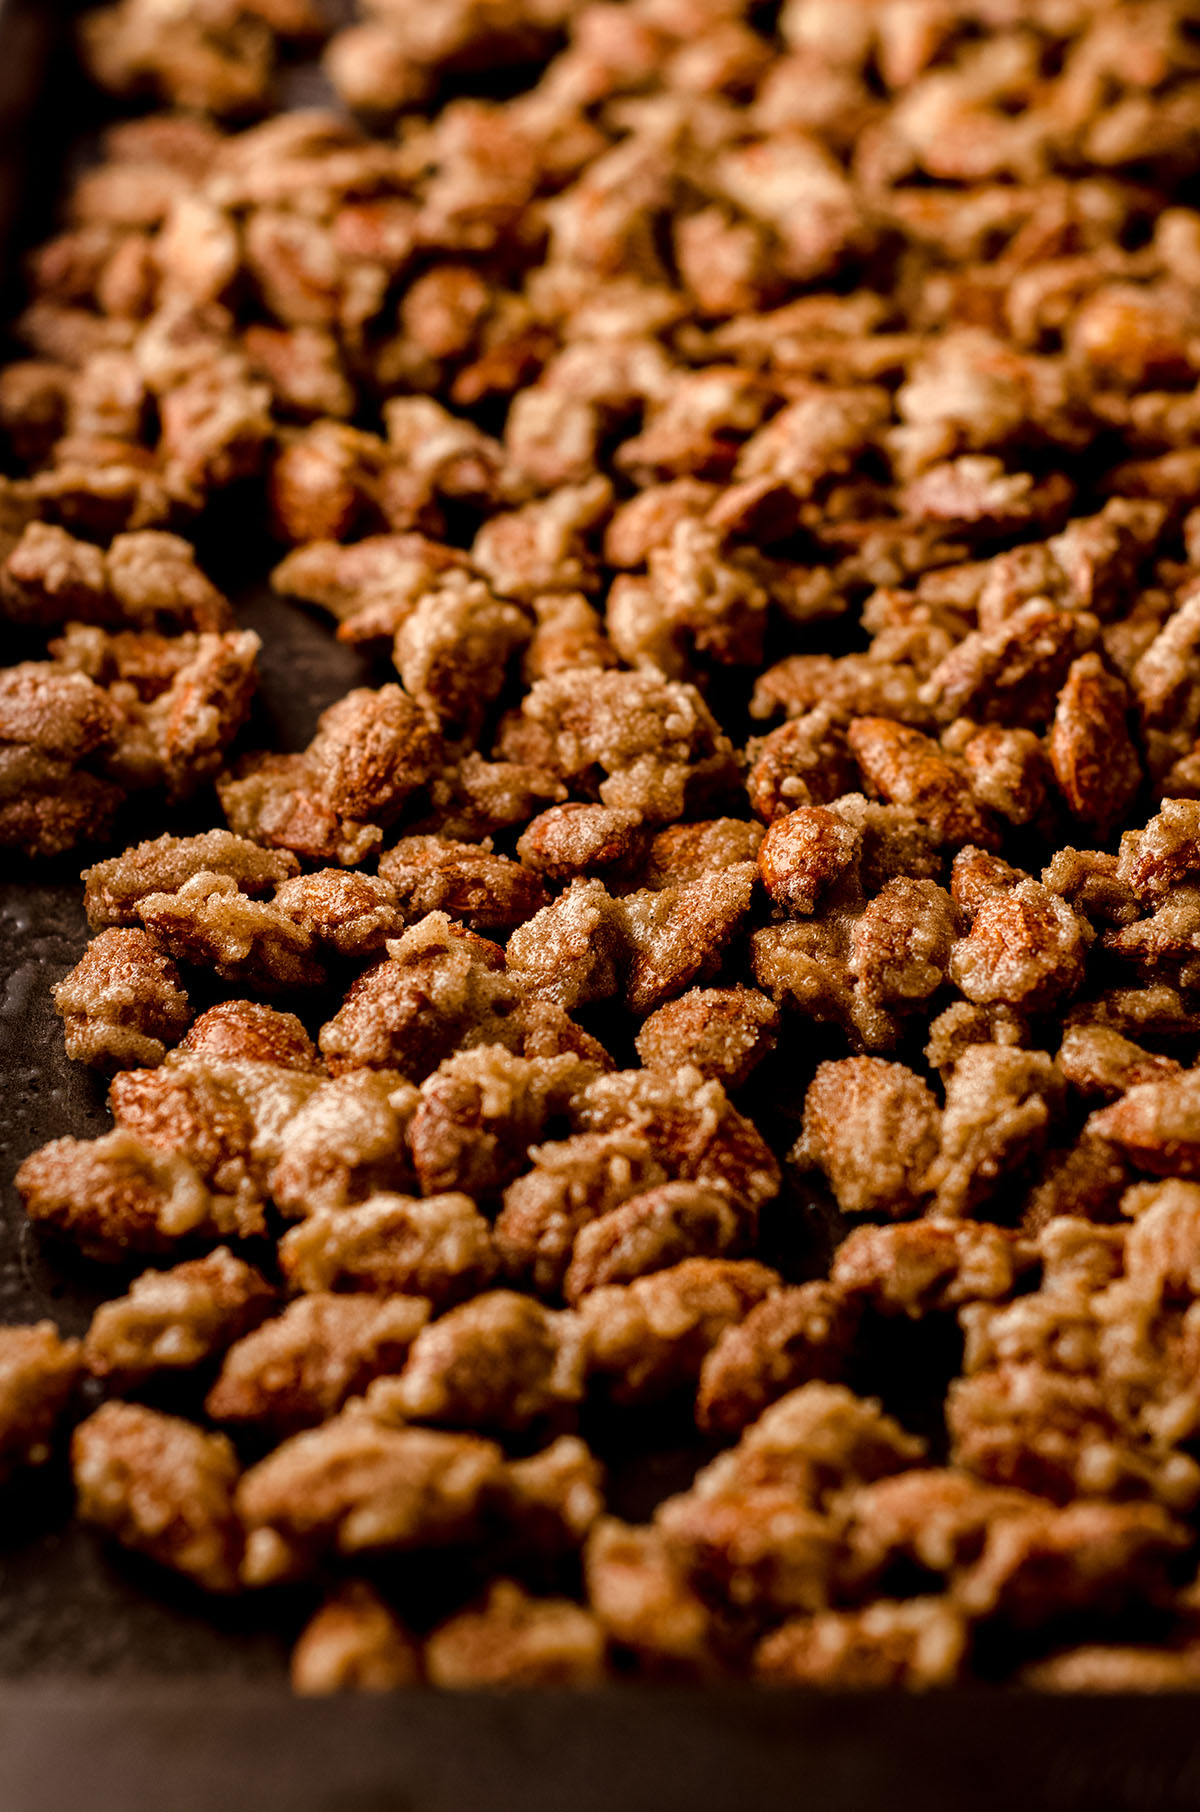 candied almonds on a baking sheet before baking